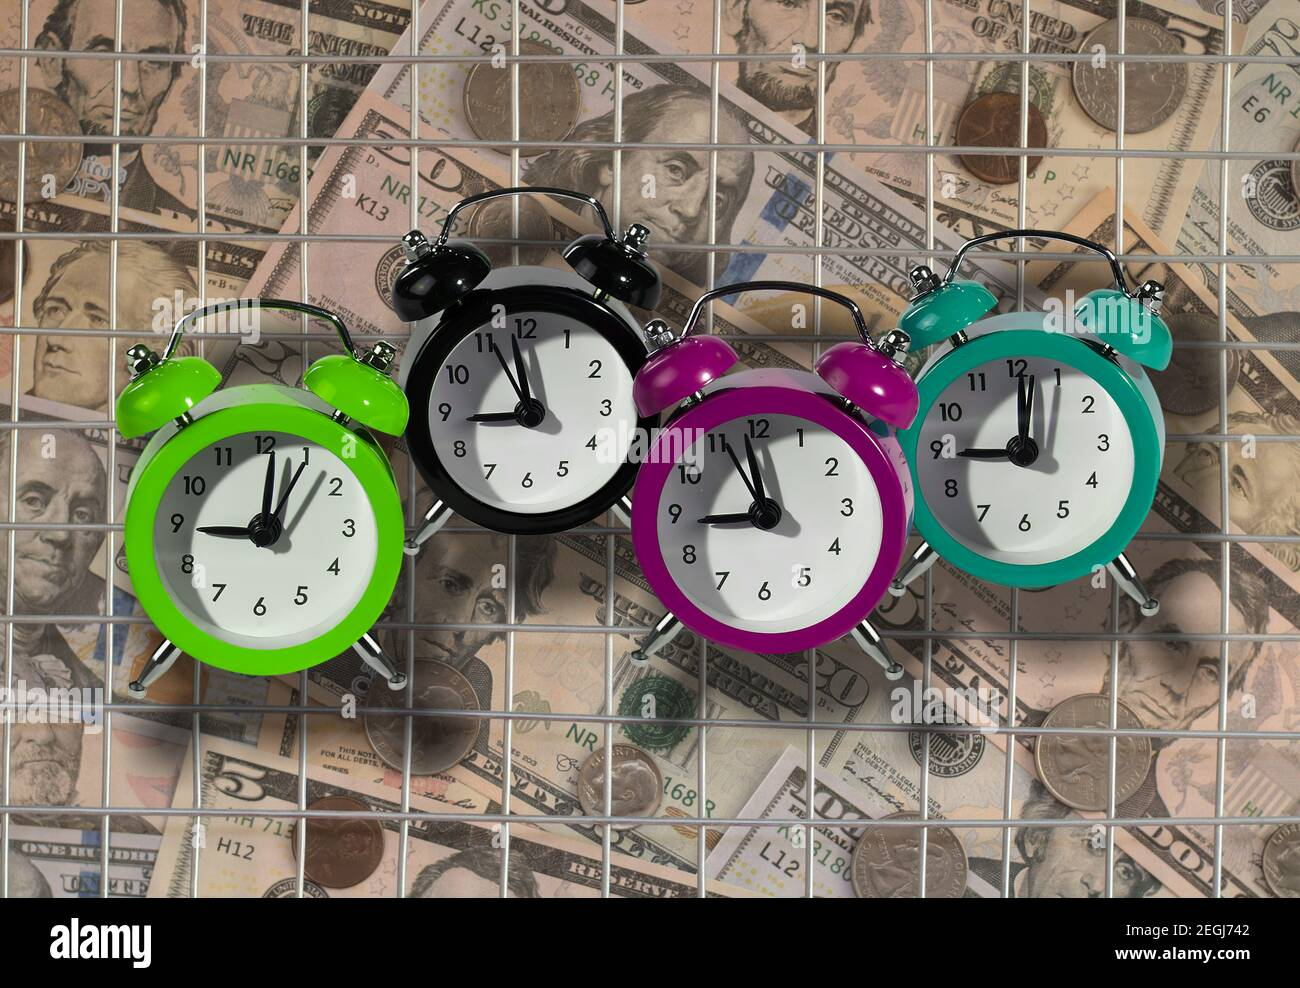 Alarm clocks as a tax reminder symbol. Bars as a symbol of prison for unpaid tax on time or hiding income from the Tax Office. Stock Photo